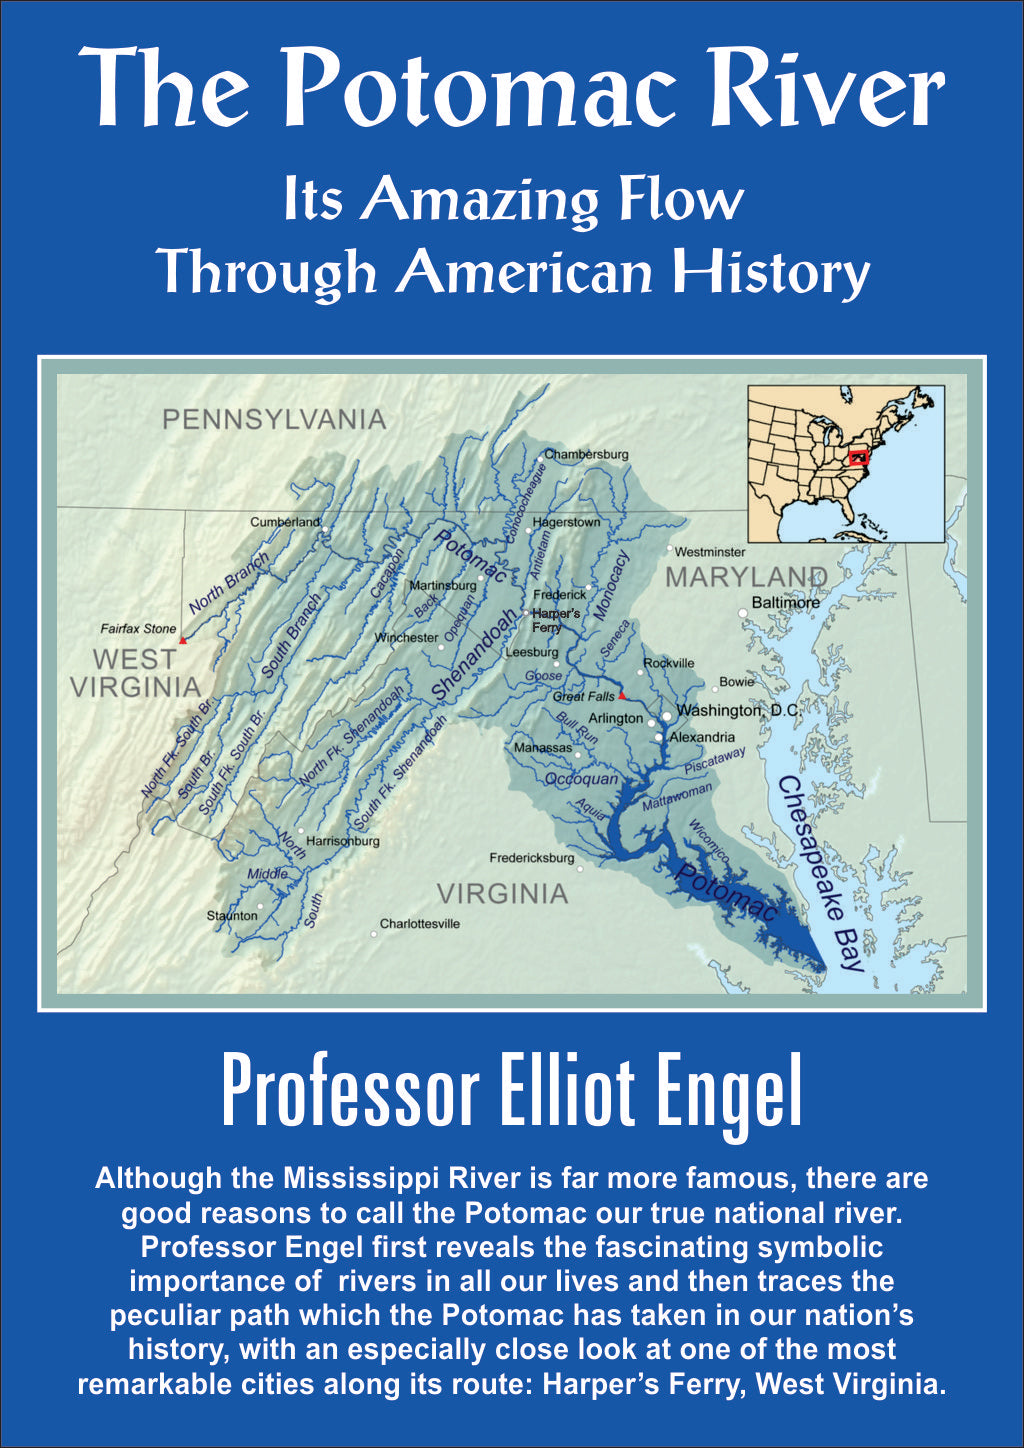 DL103 The Potomac River: Its Amazing Flow Through American History - AUDIO DOWNLOAD